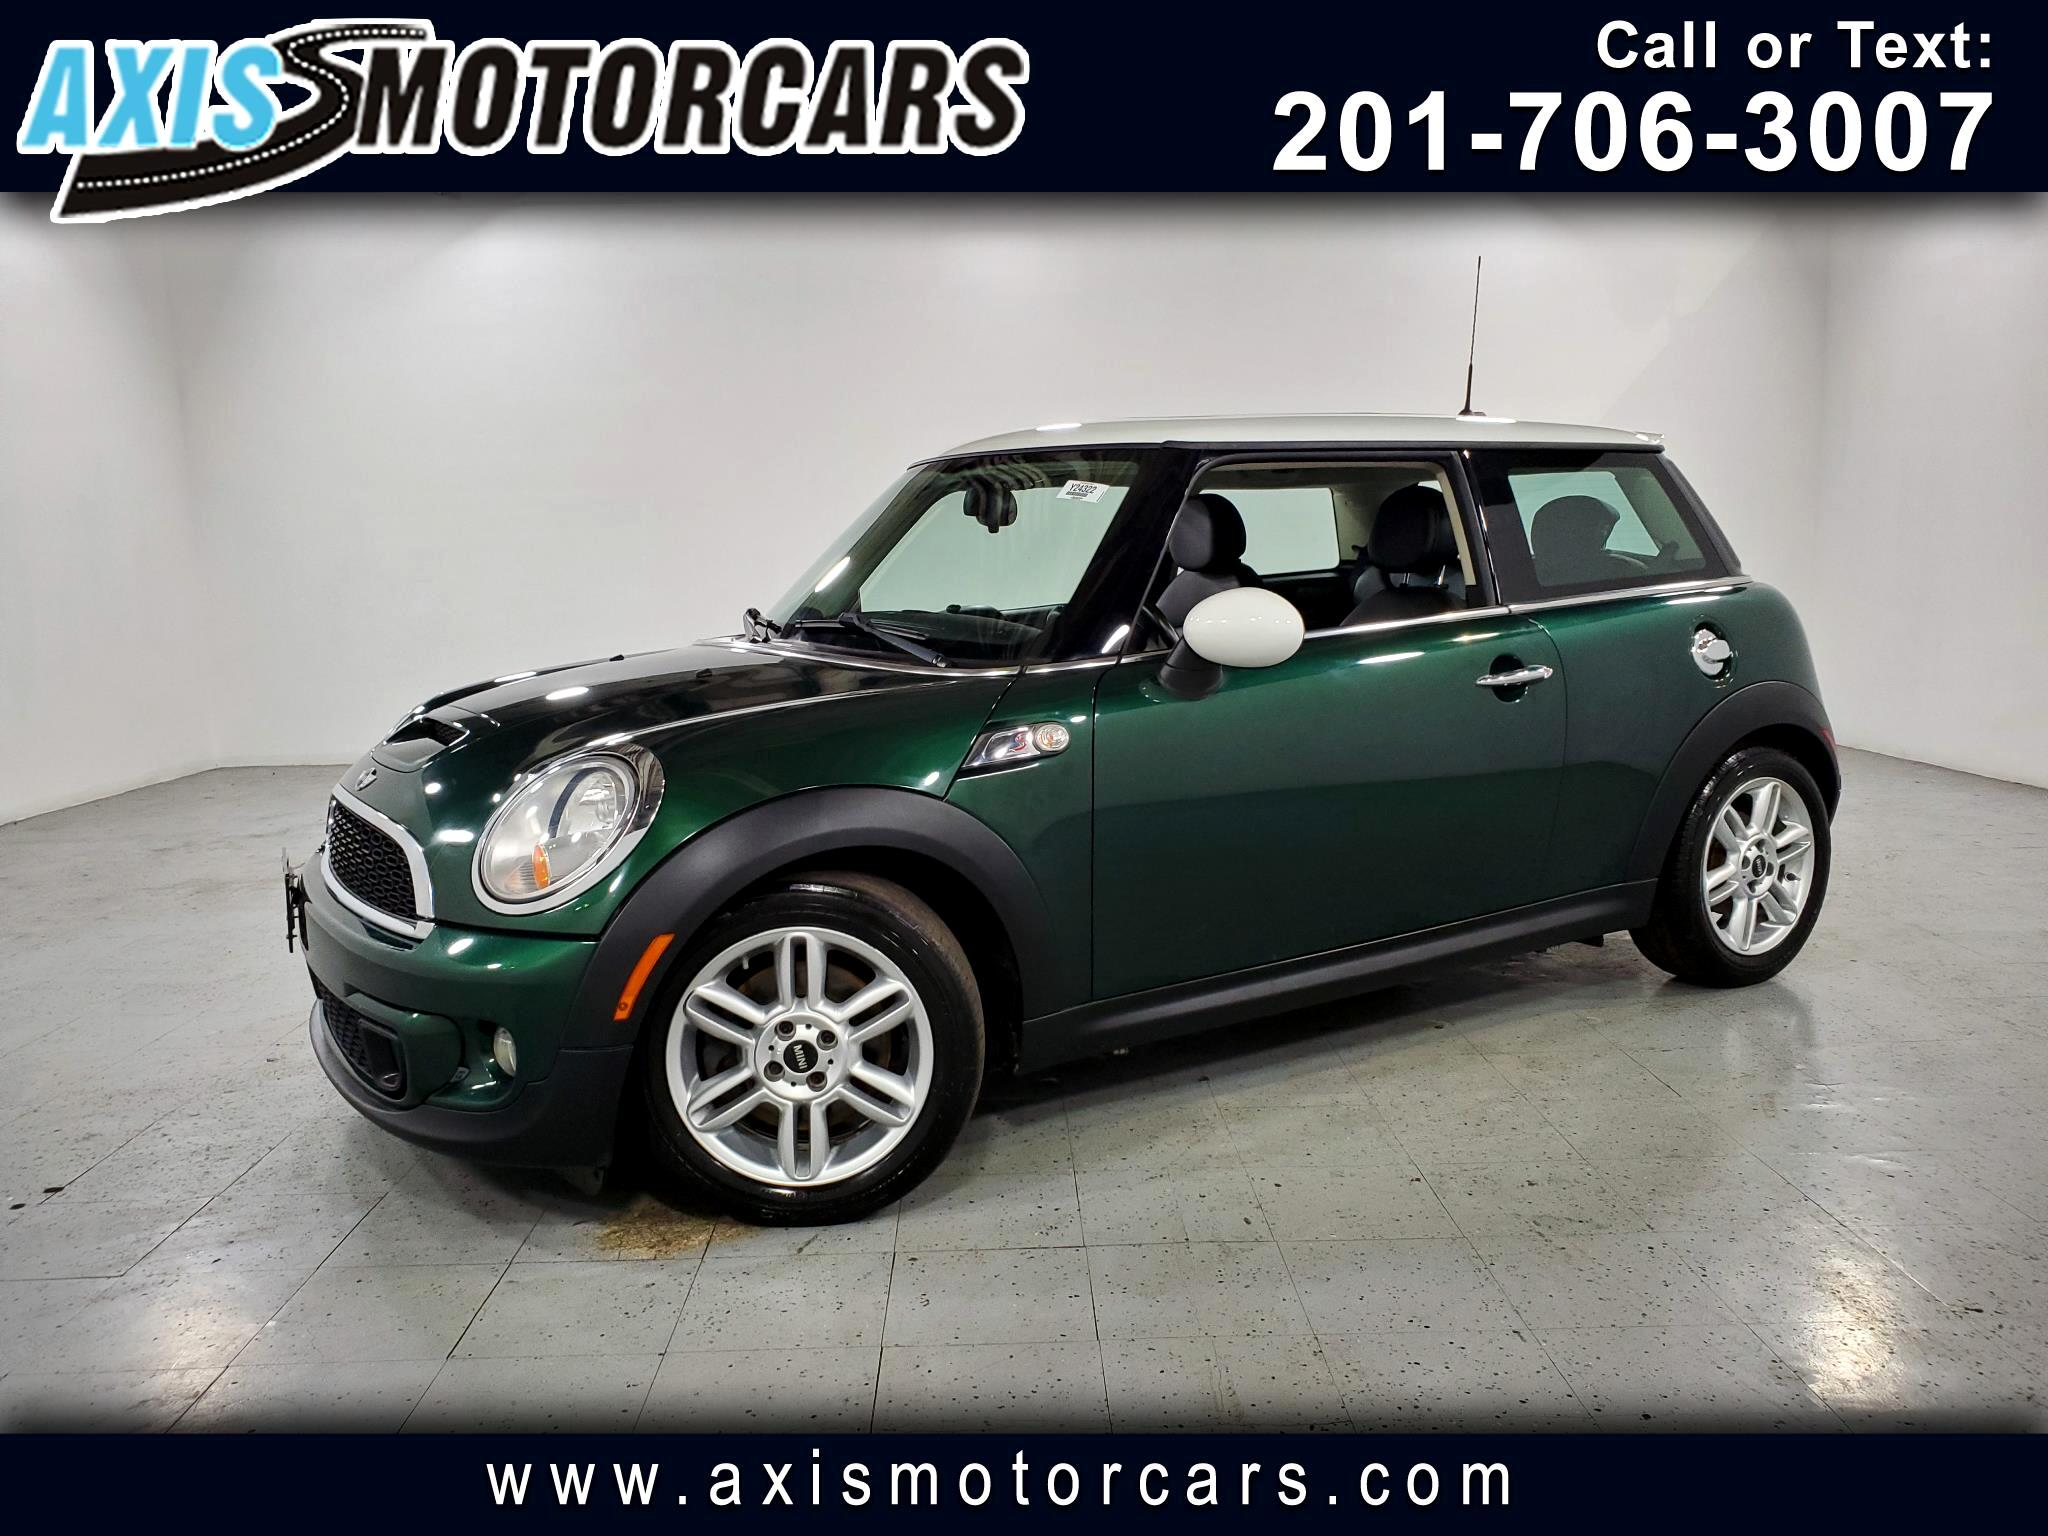 2011 MINI Cooper Hardtop Cpe S w/Leather Panoramic Roof